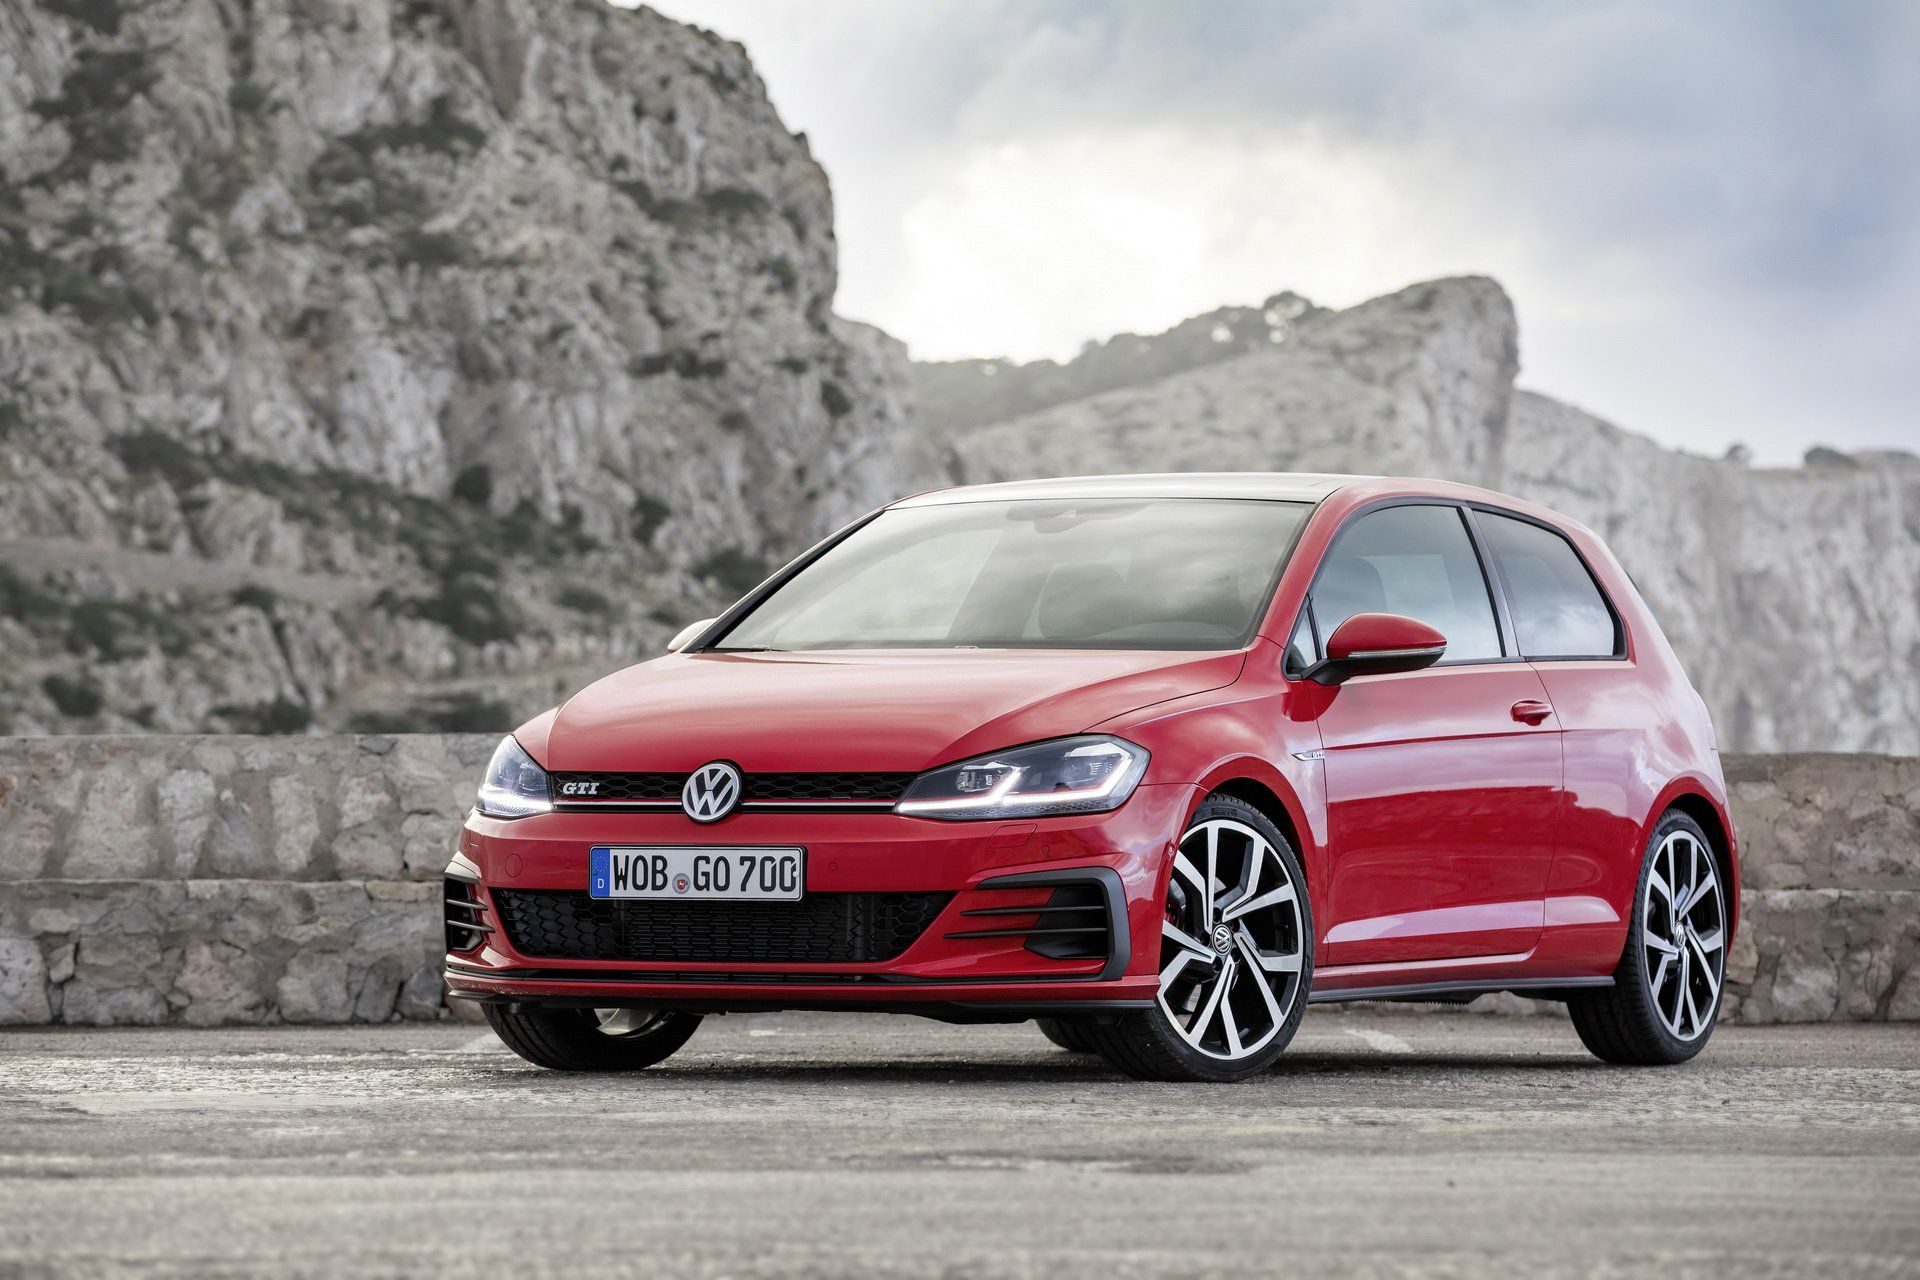 Volkswagen Golf Gti Dropped Due To Eu S Stricter Emissions Tests